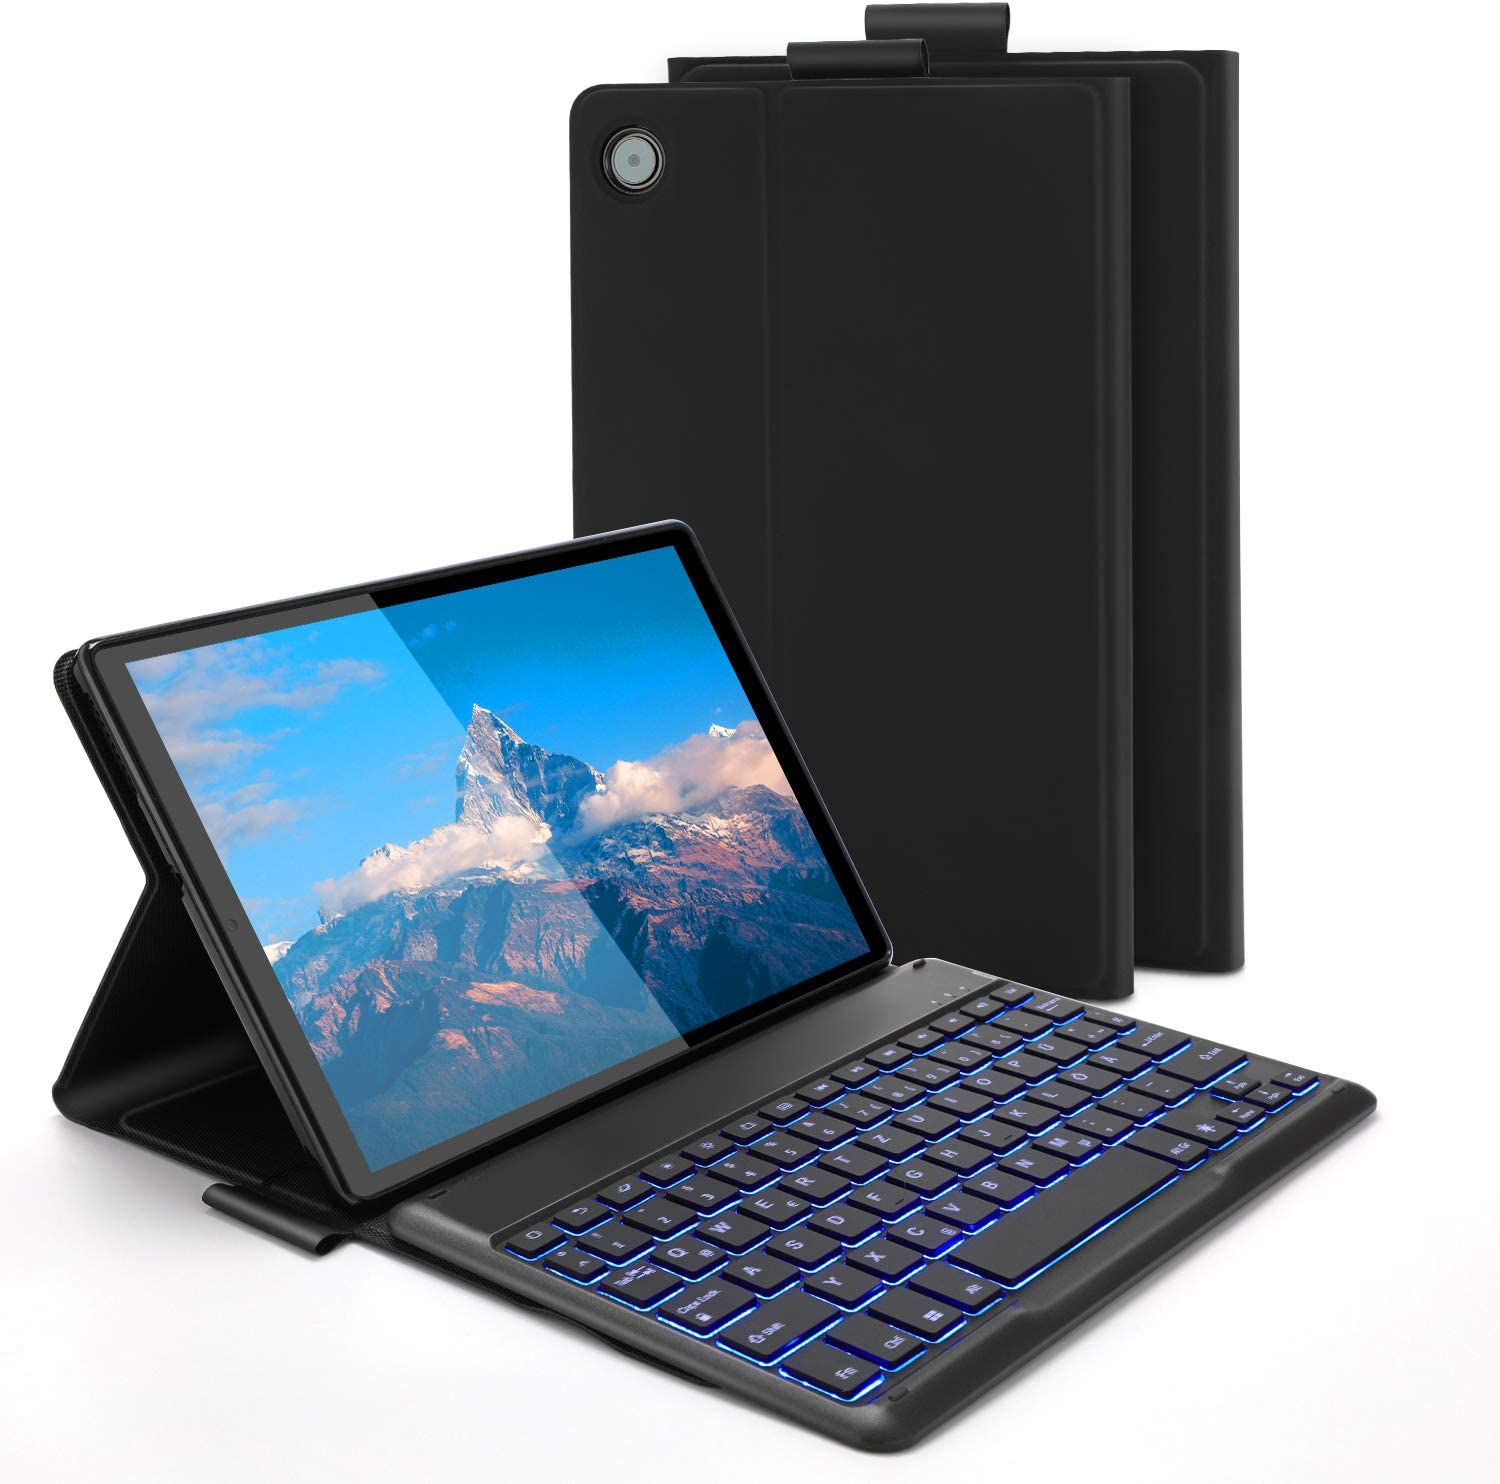 Jelly Comb Backlit Keyboard Case For Lenovo Tab M10 Computers Accessories